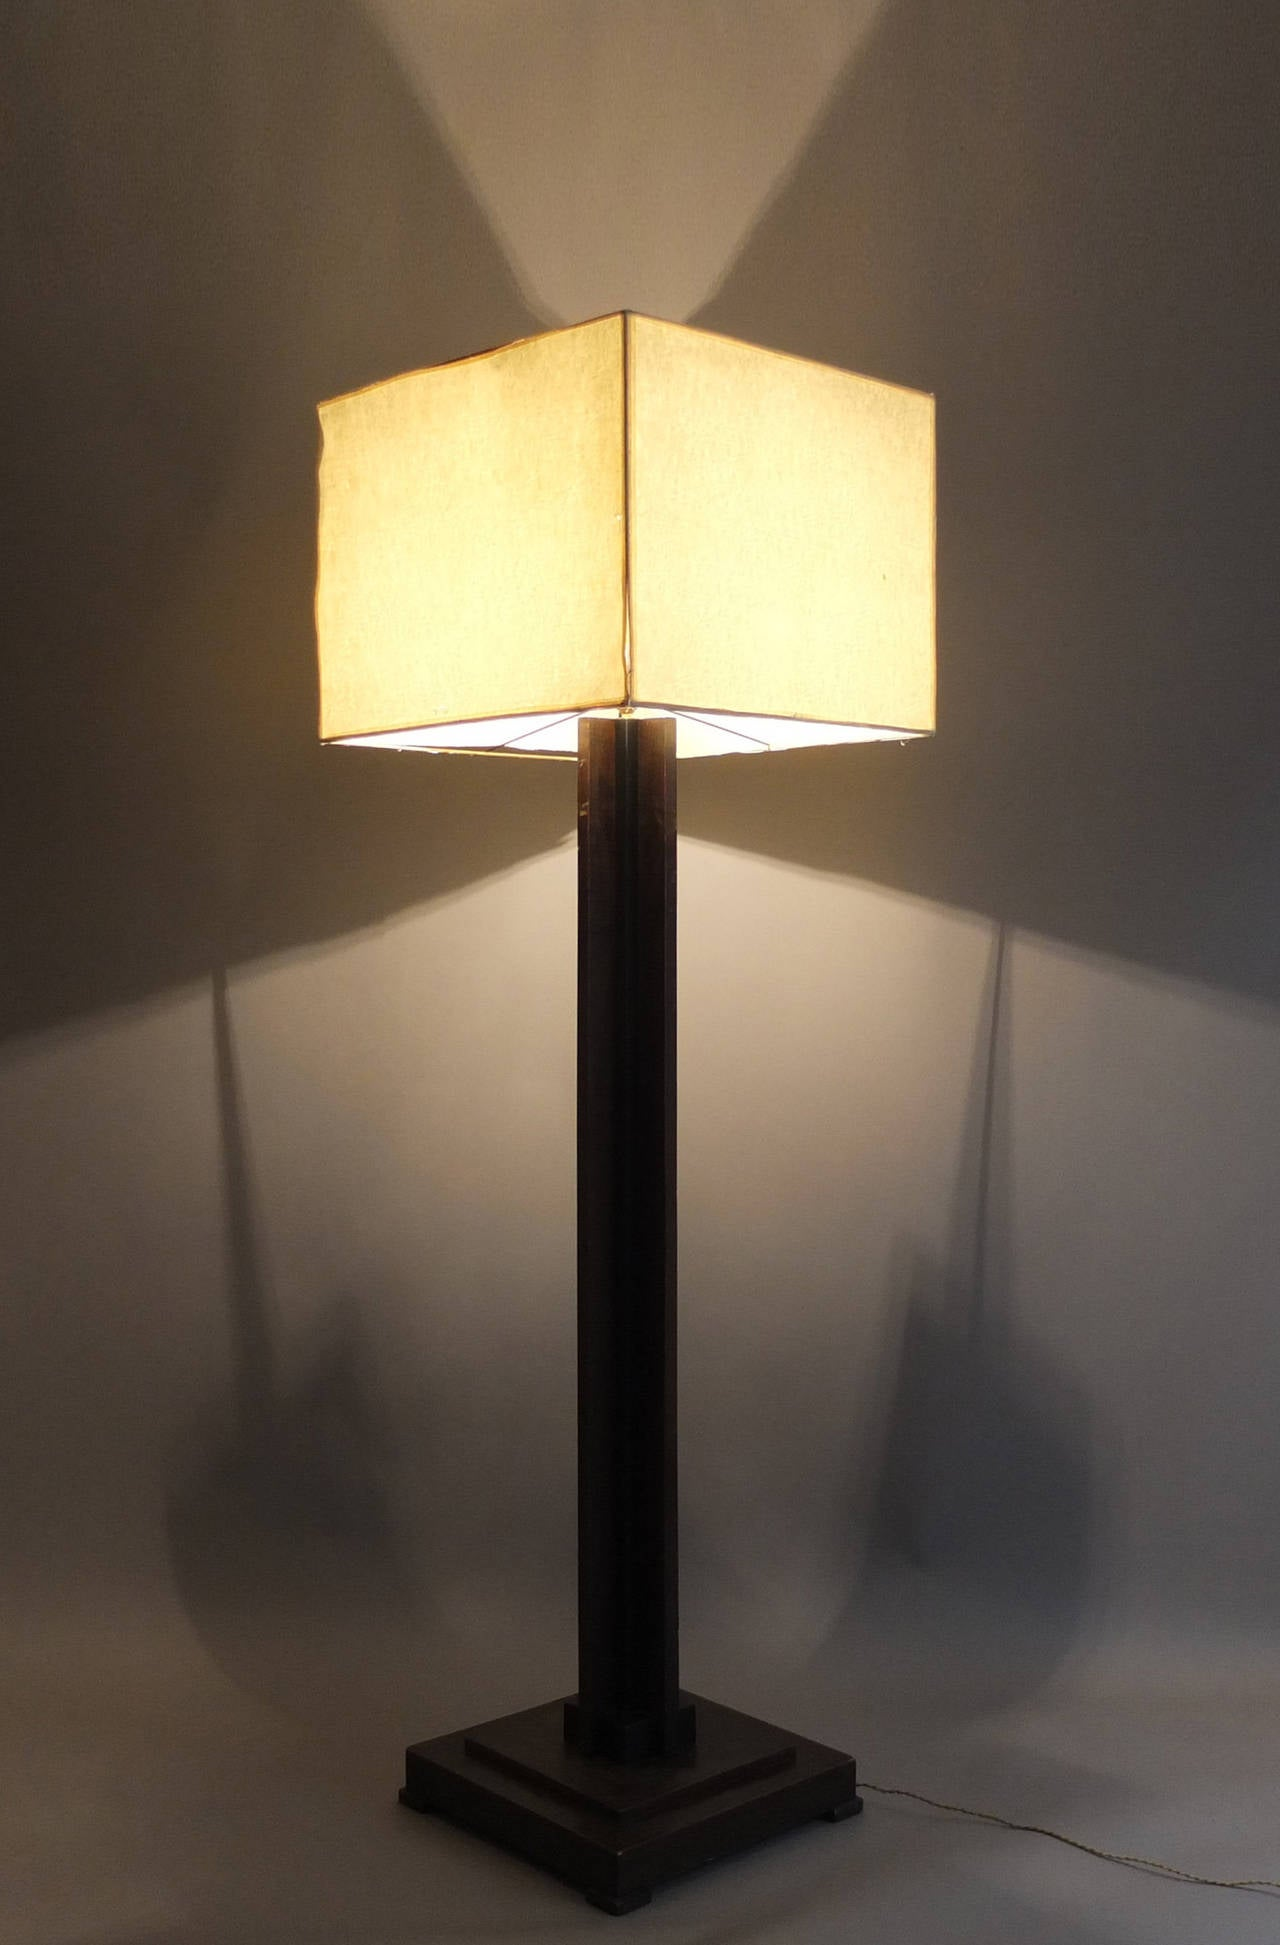 fine french art deco wooden base square floor lamp for sale at stdibs - fine french art deco wooden base square floor lamp